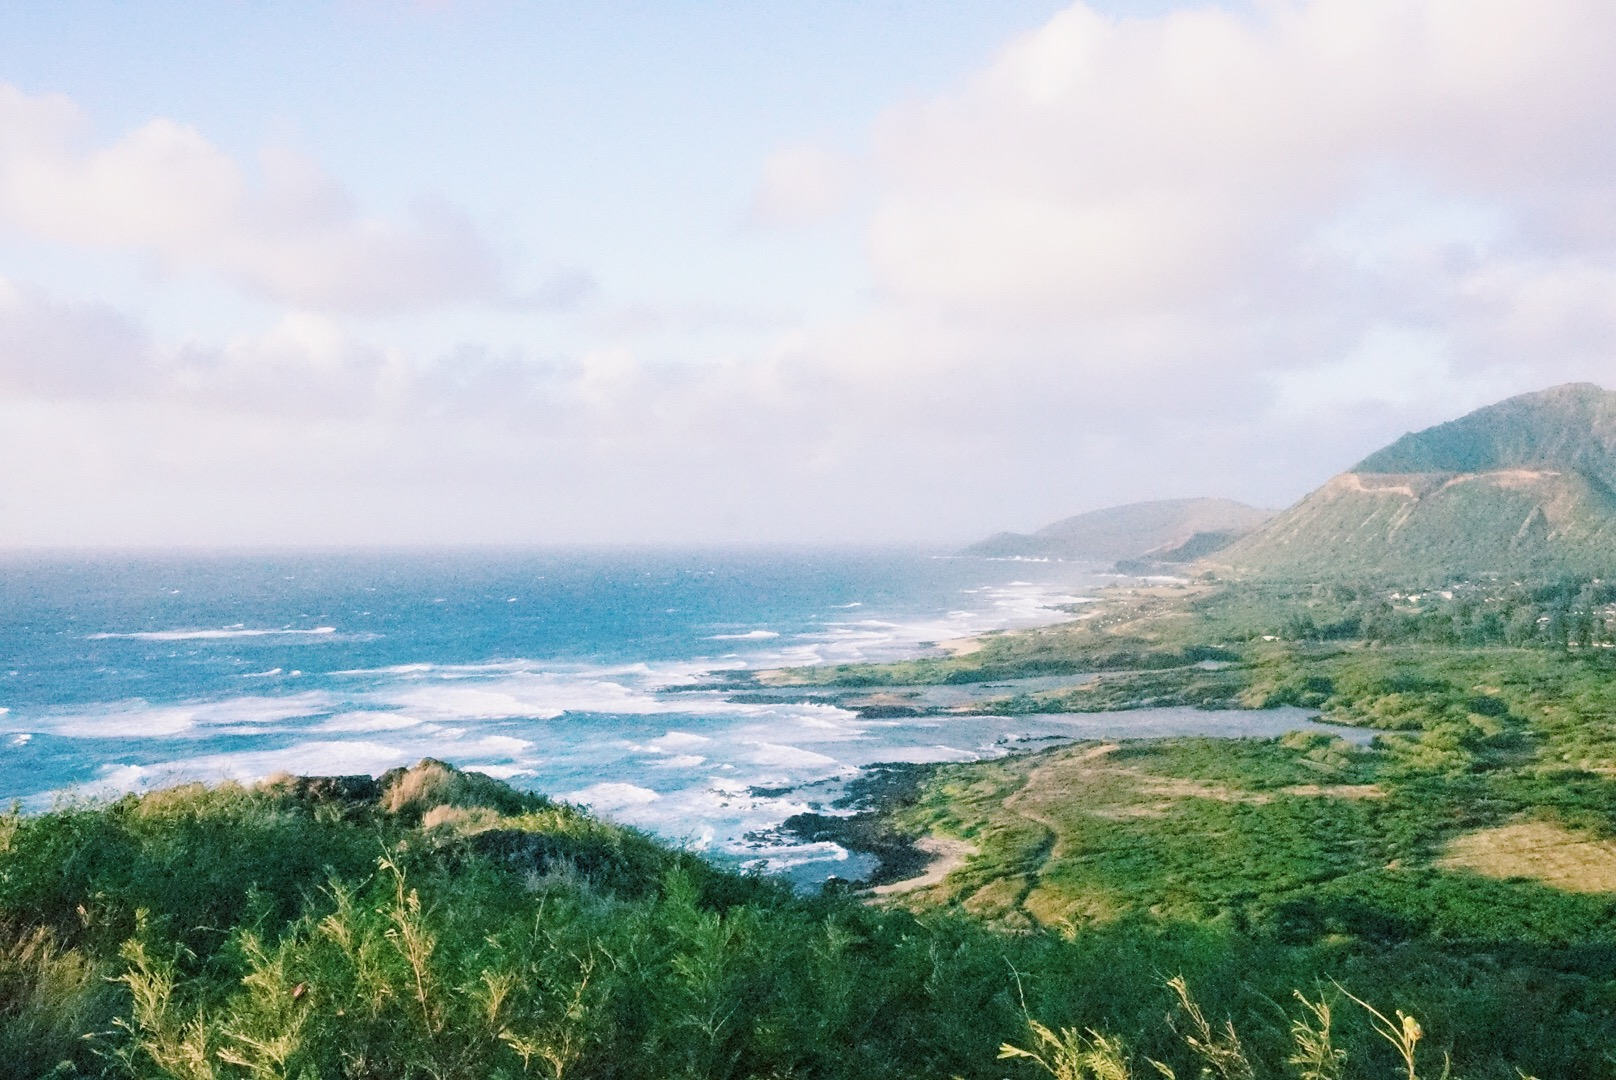 The view of the back of Koko Head Crater on Oahu